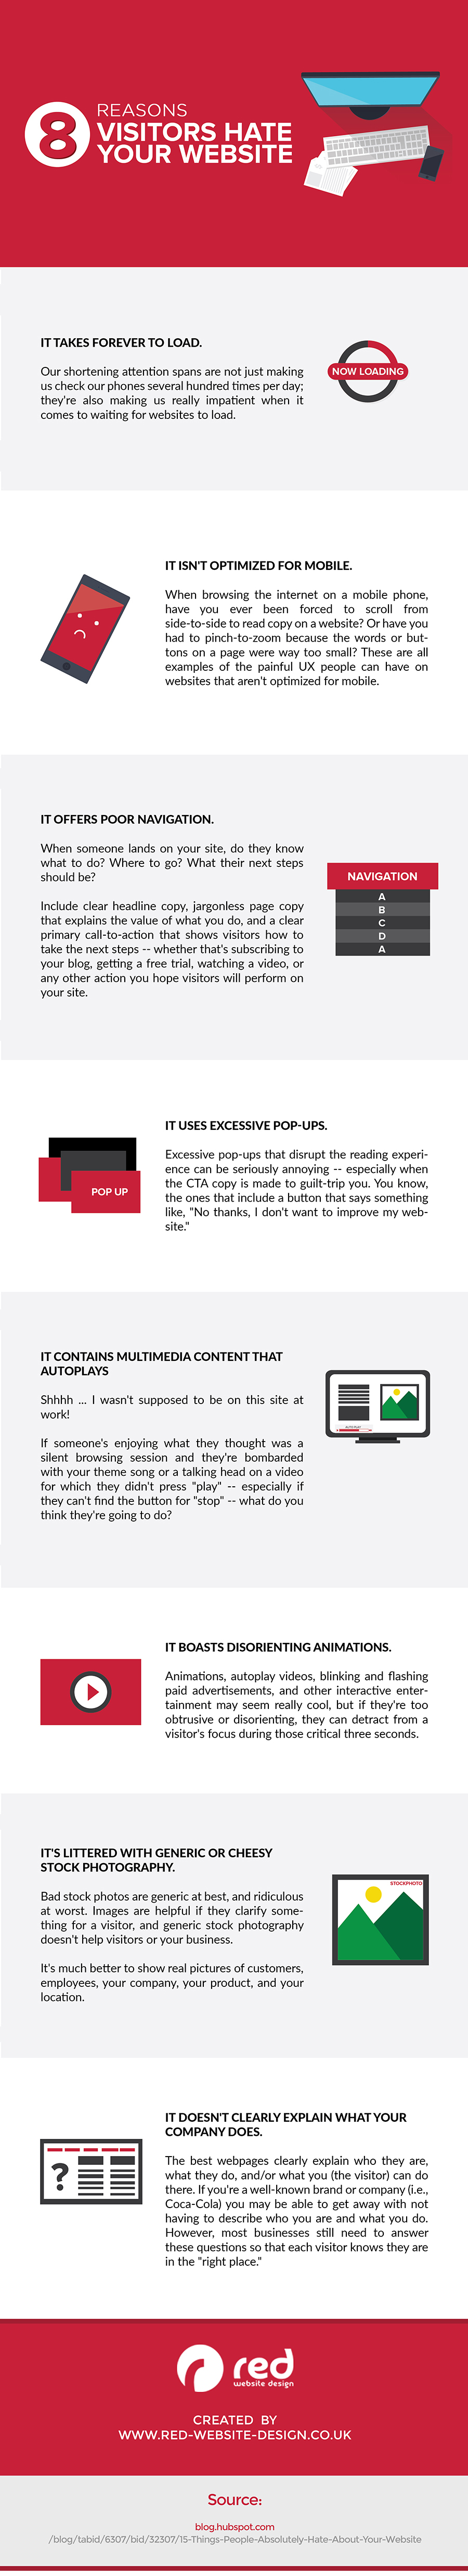 Infographic looks at common website problems